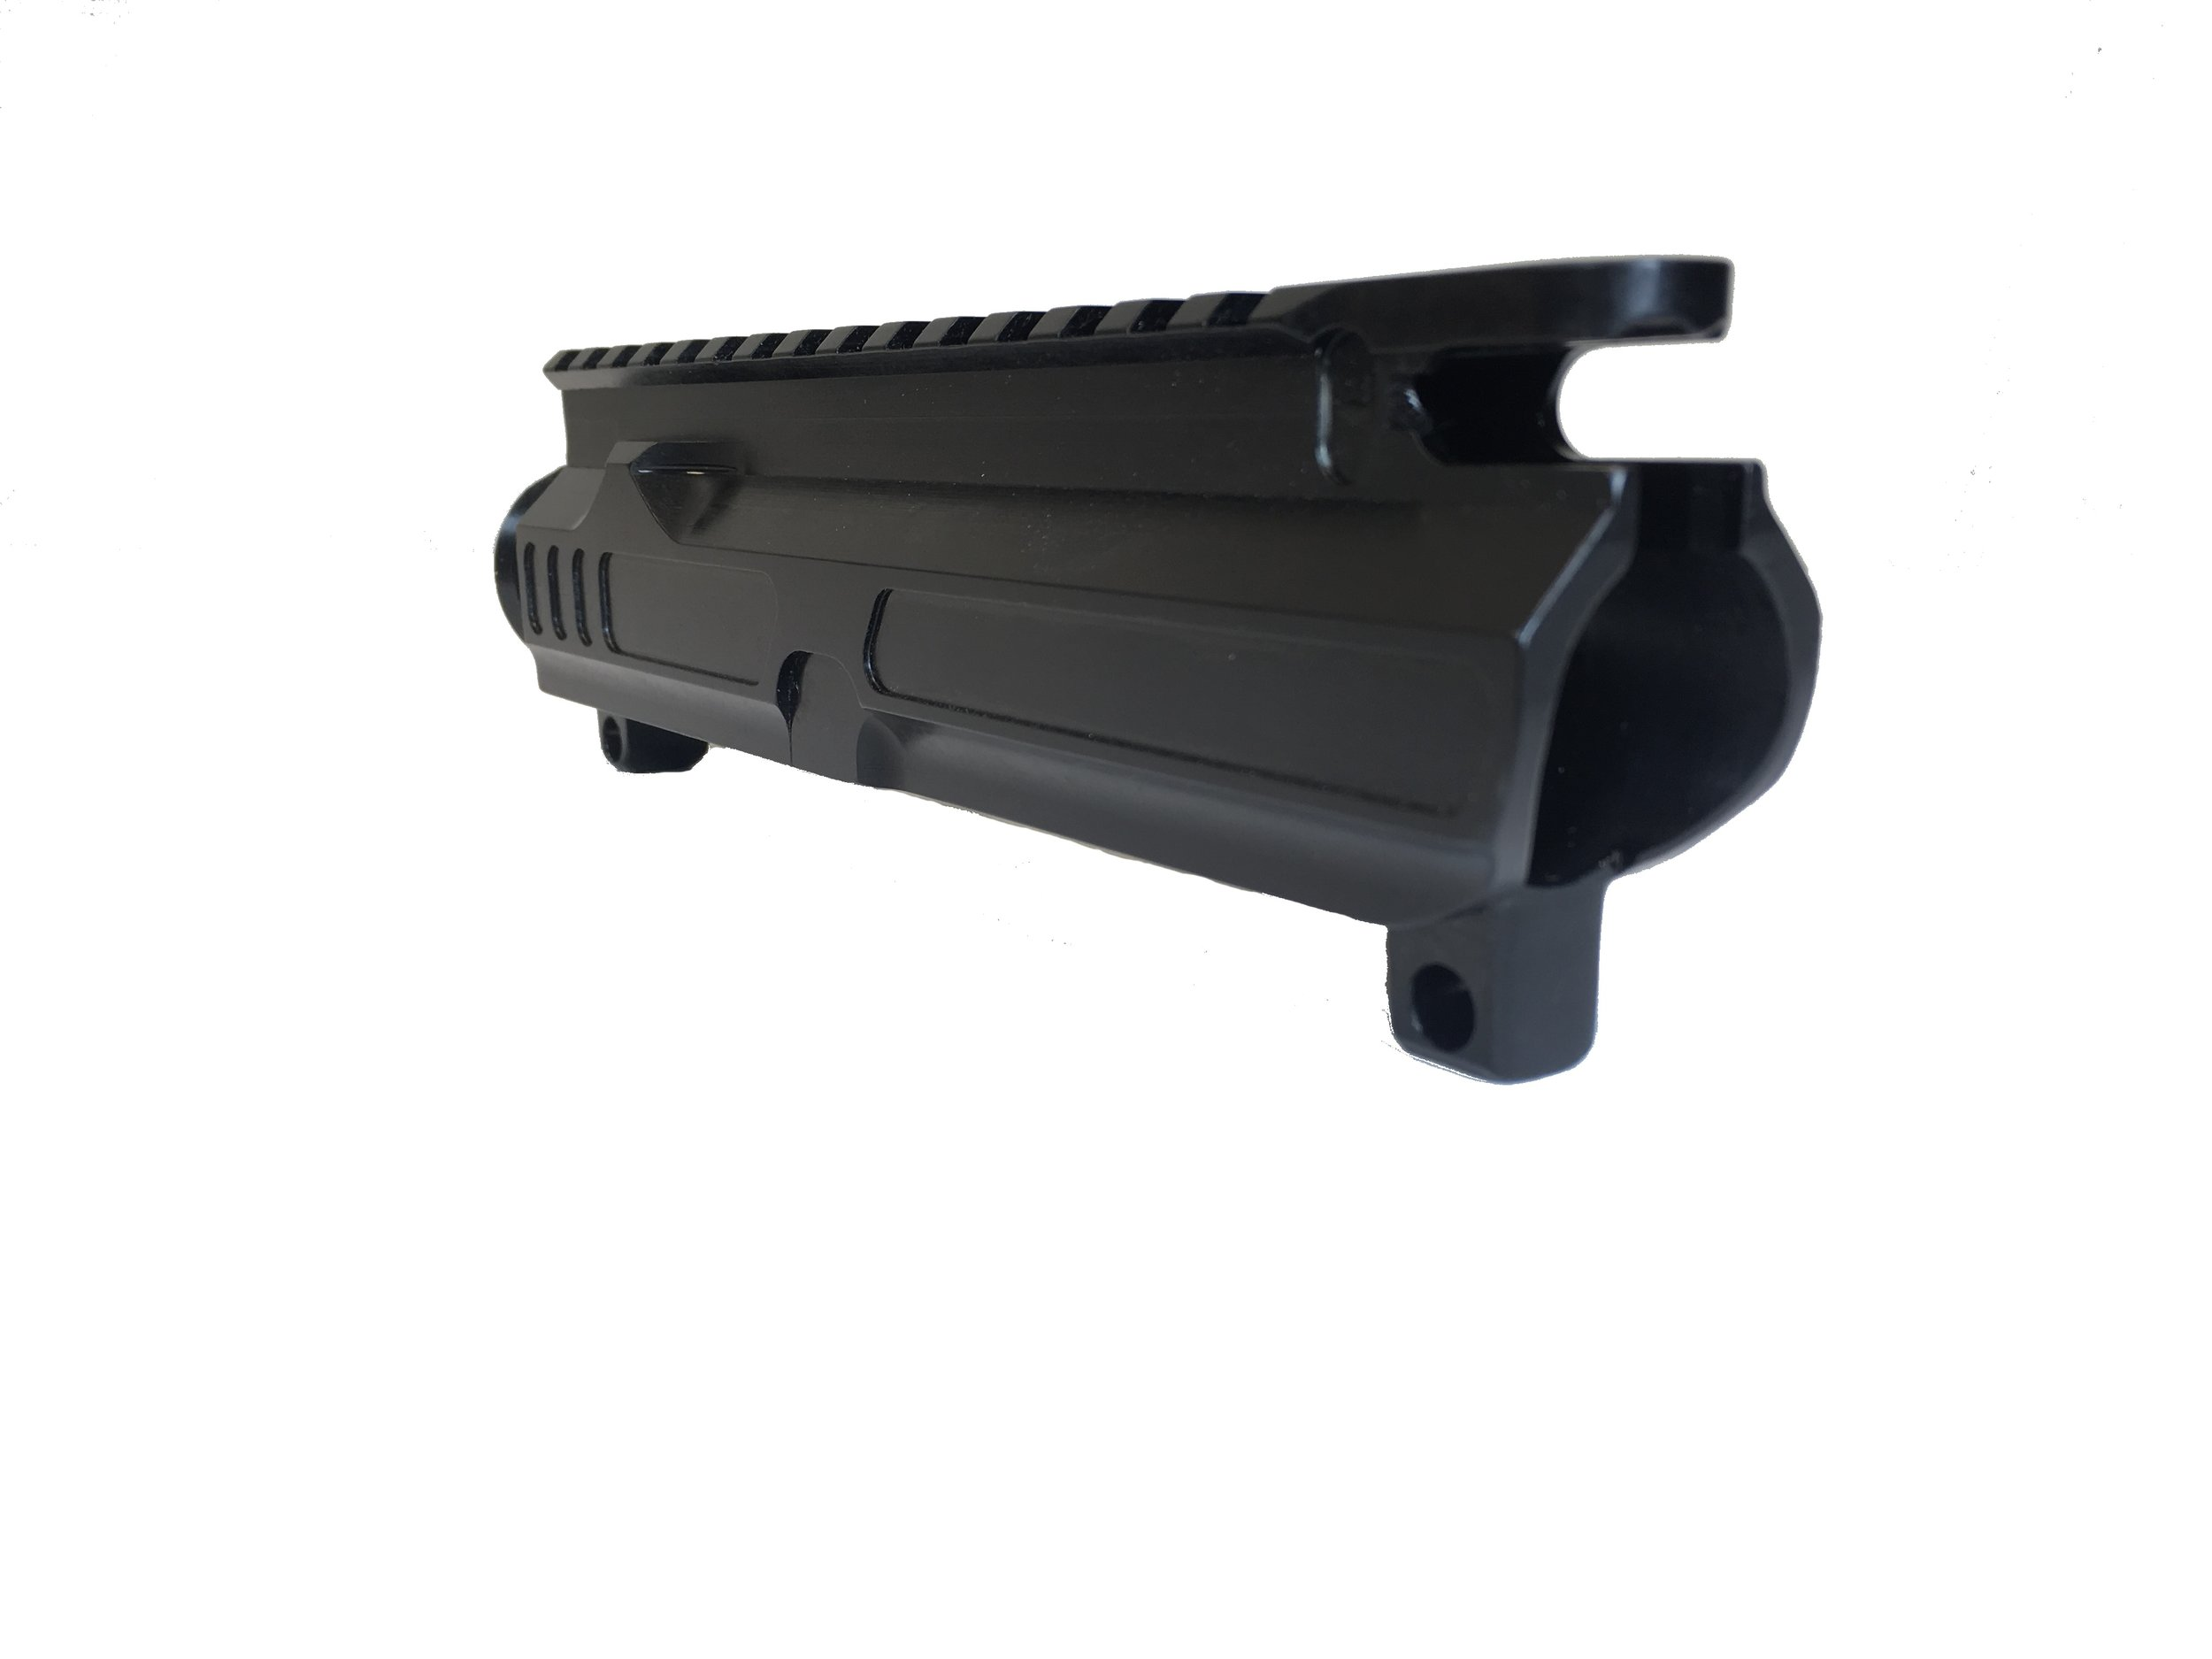 WSSM AR Upper, Rear Charge